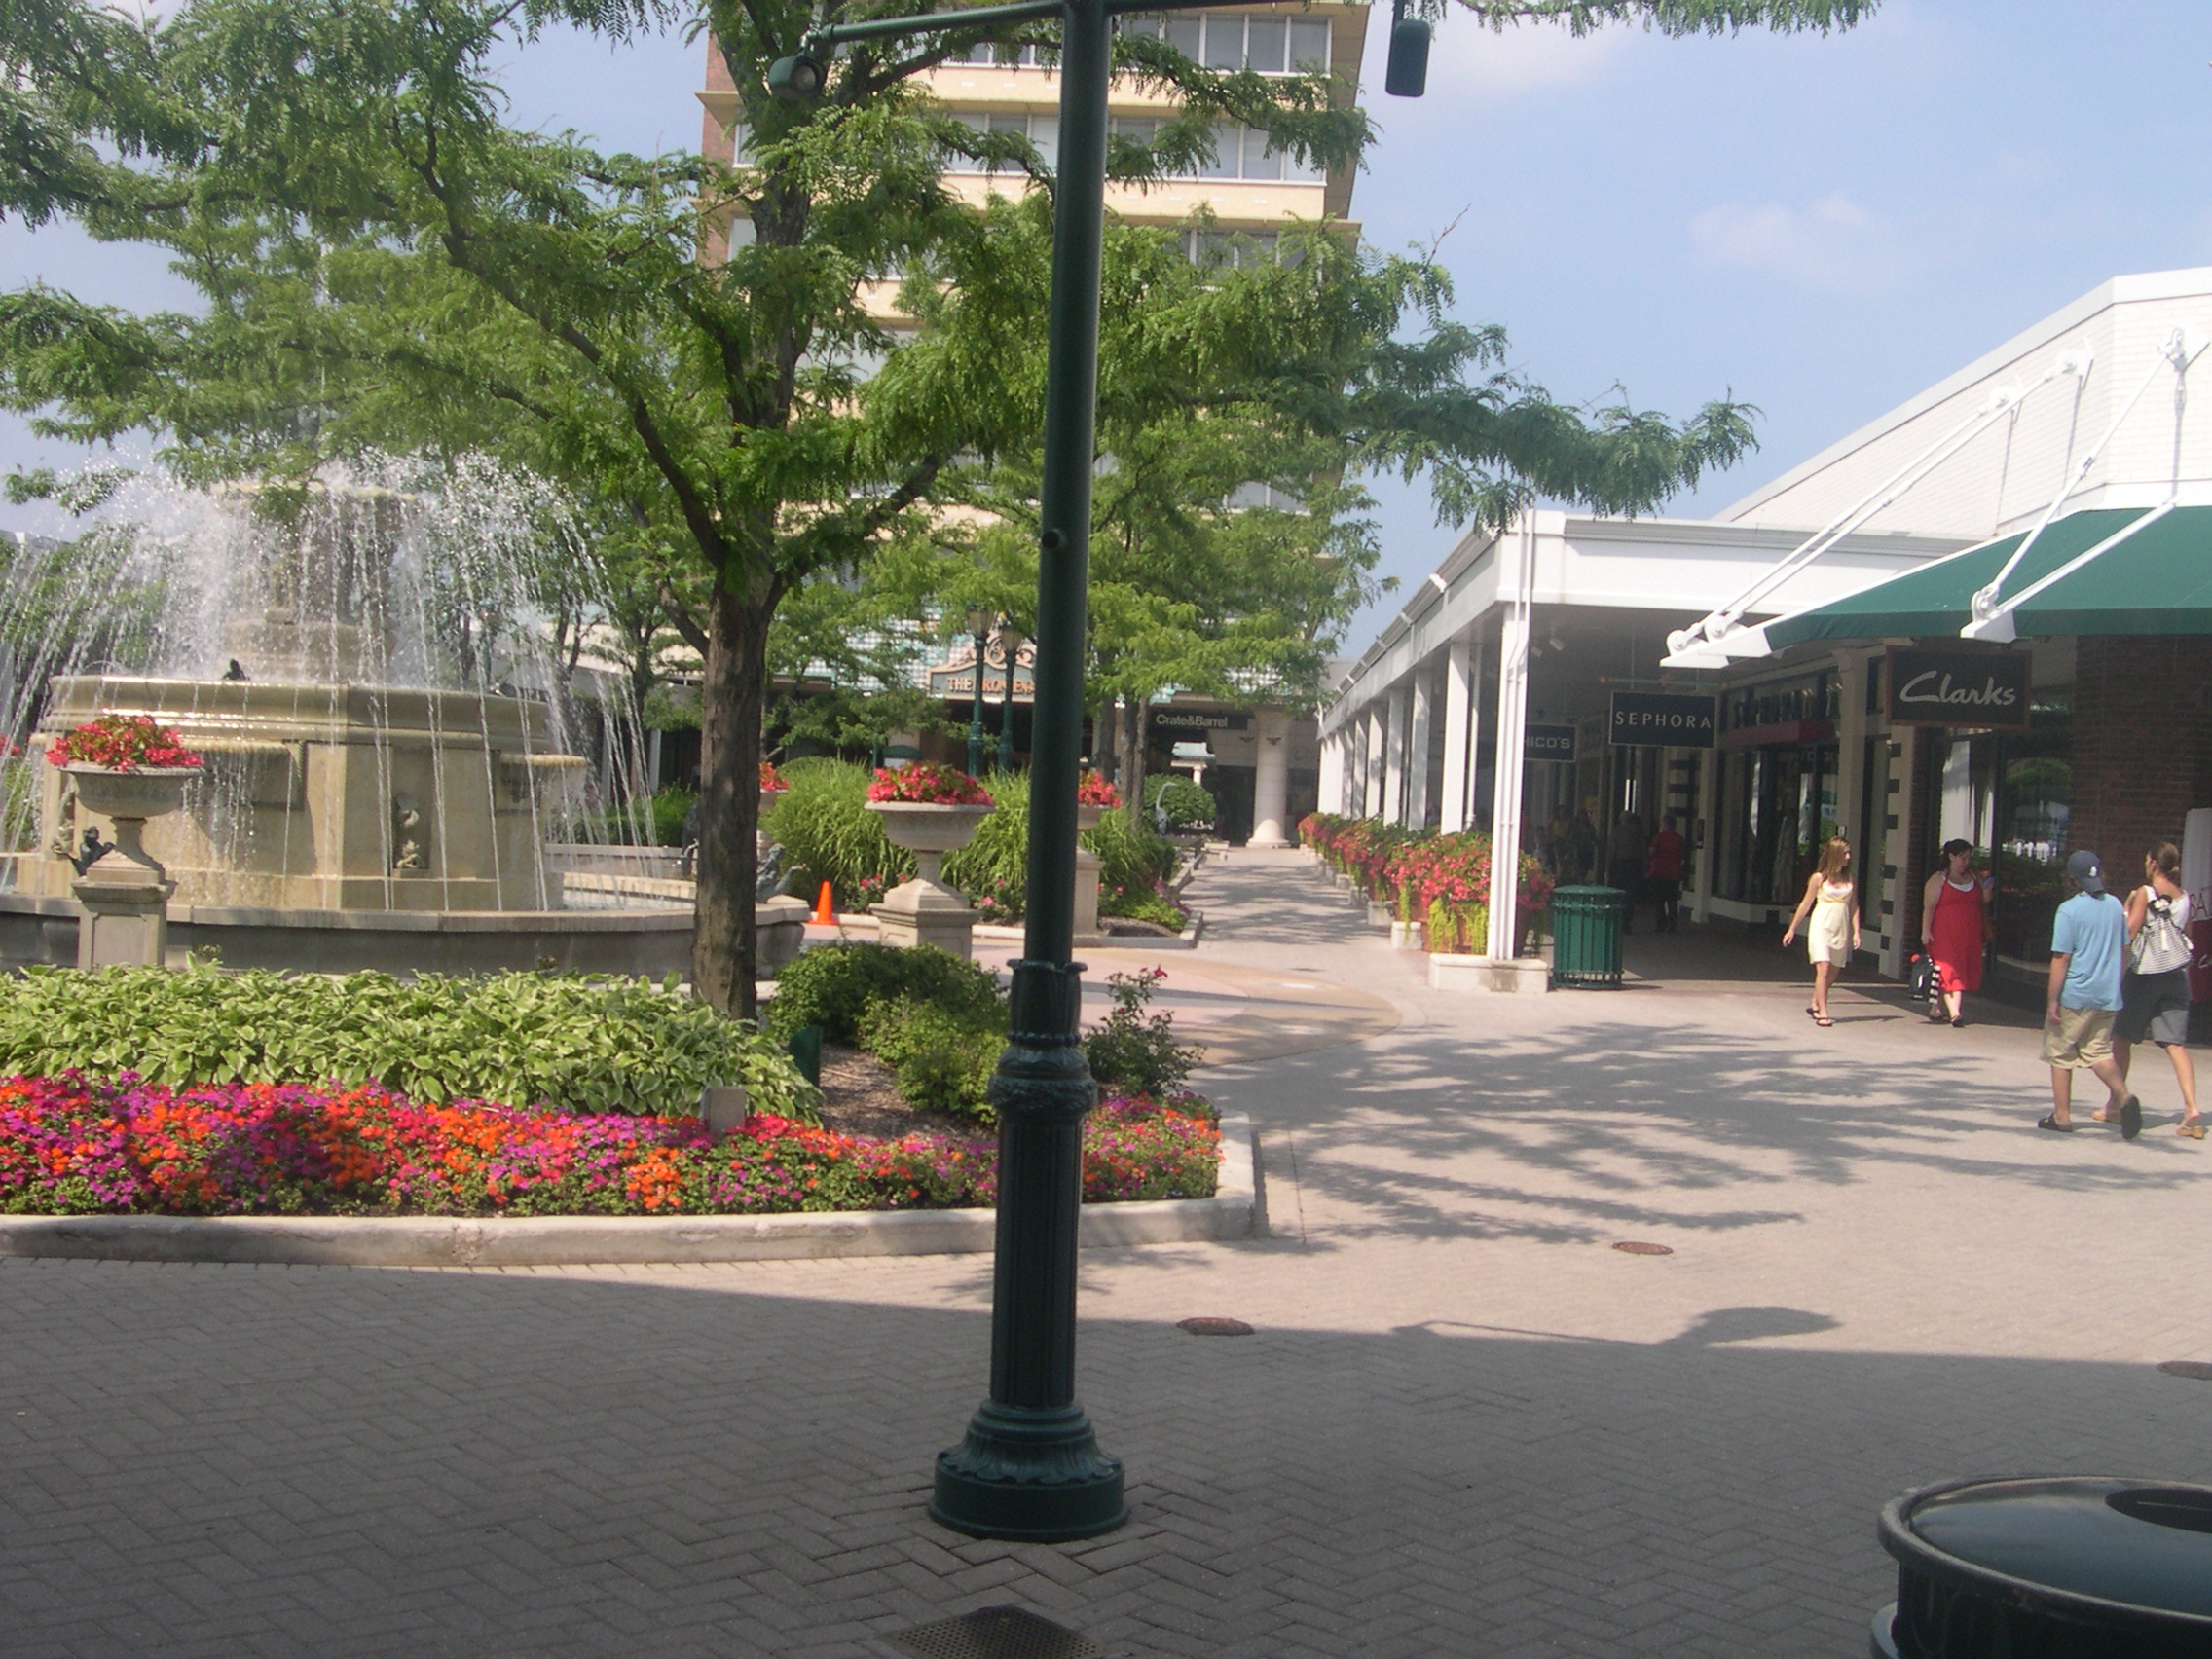 Westfield Old Orchard is Chicago's premier shopping destination located in the prestigious North Shore neighborhood. The center is a personified destination that delivers a unique experience combining fashion, food, and entertainment.8/10().